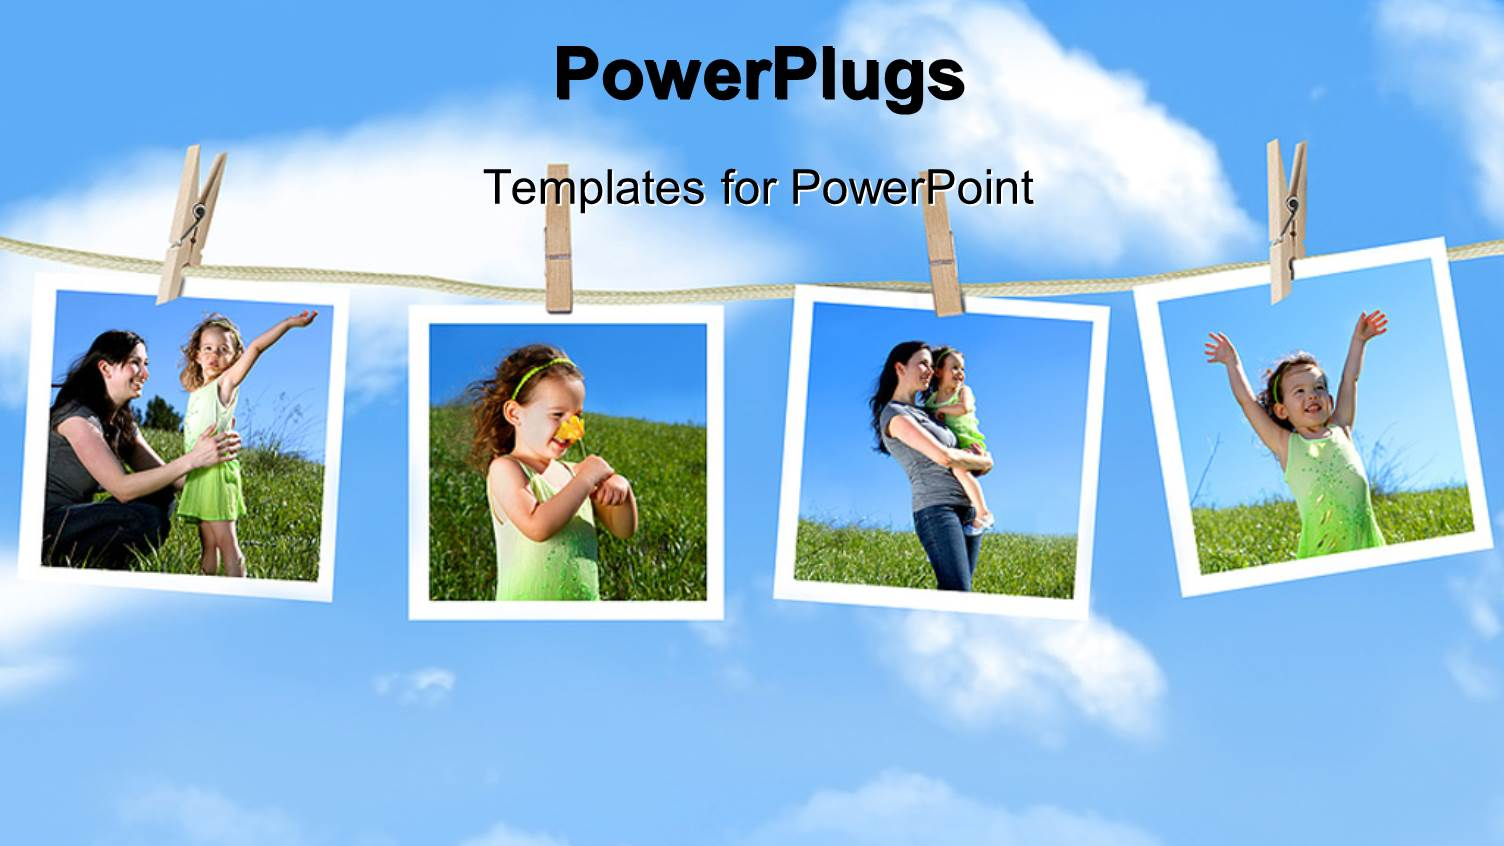 template for hanging pictures - powerpoint template family depictions hanging on a